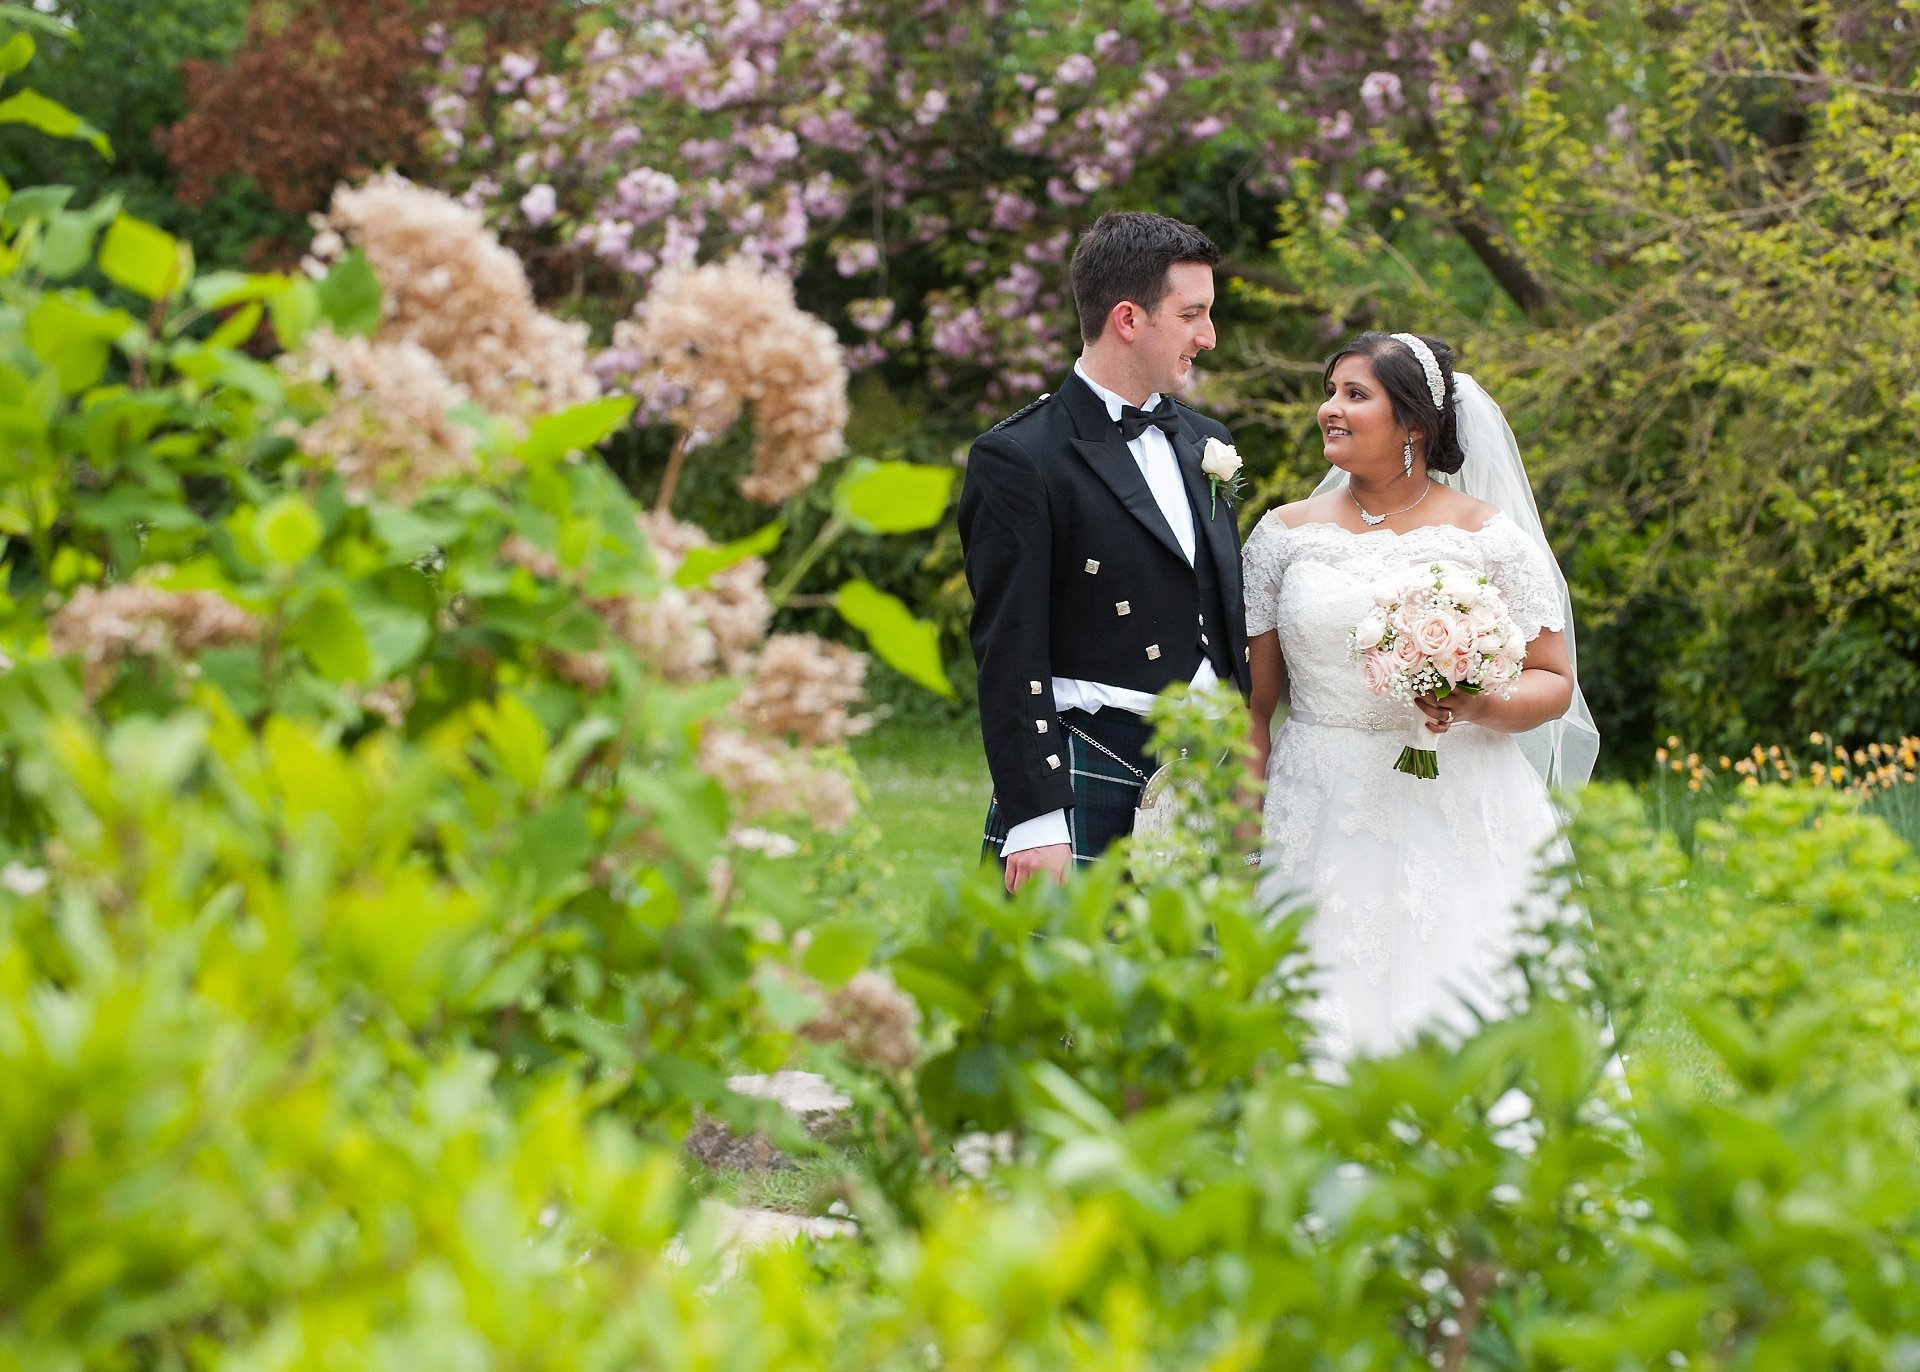 Bride & Groom in the gardens of Fulham Palace after their civil marriage ceremony